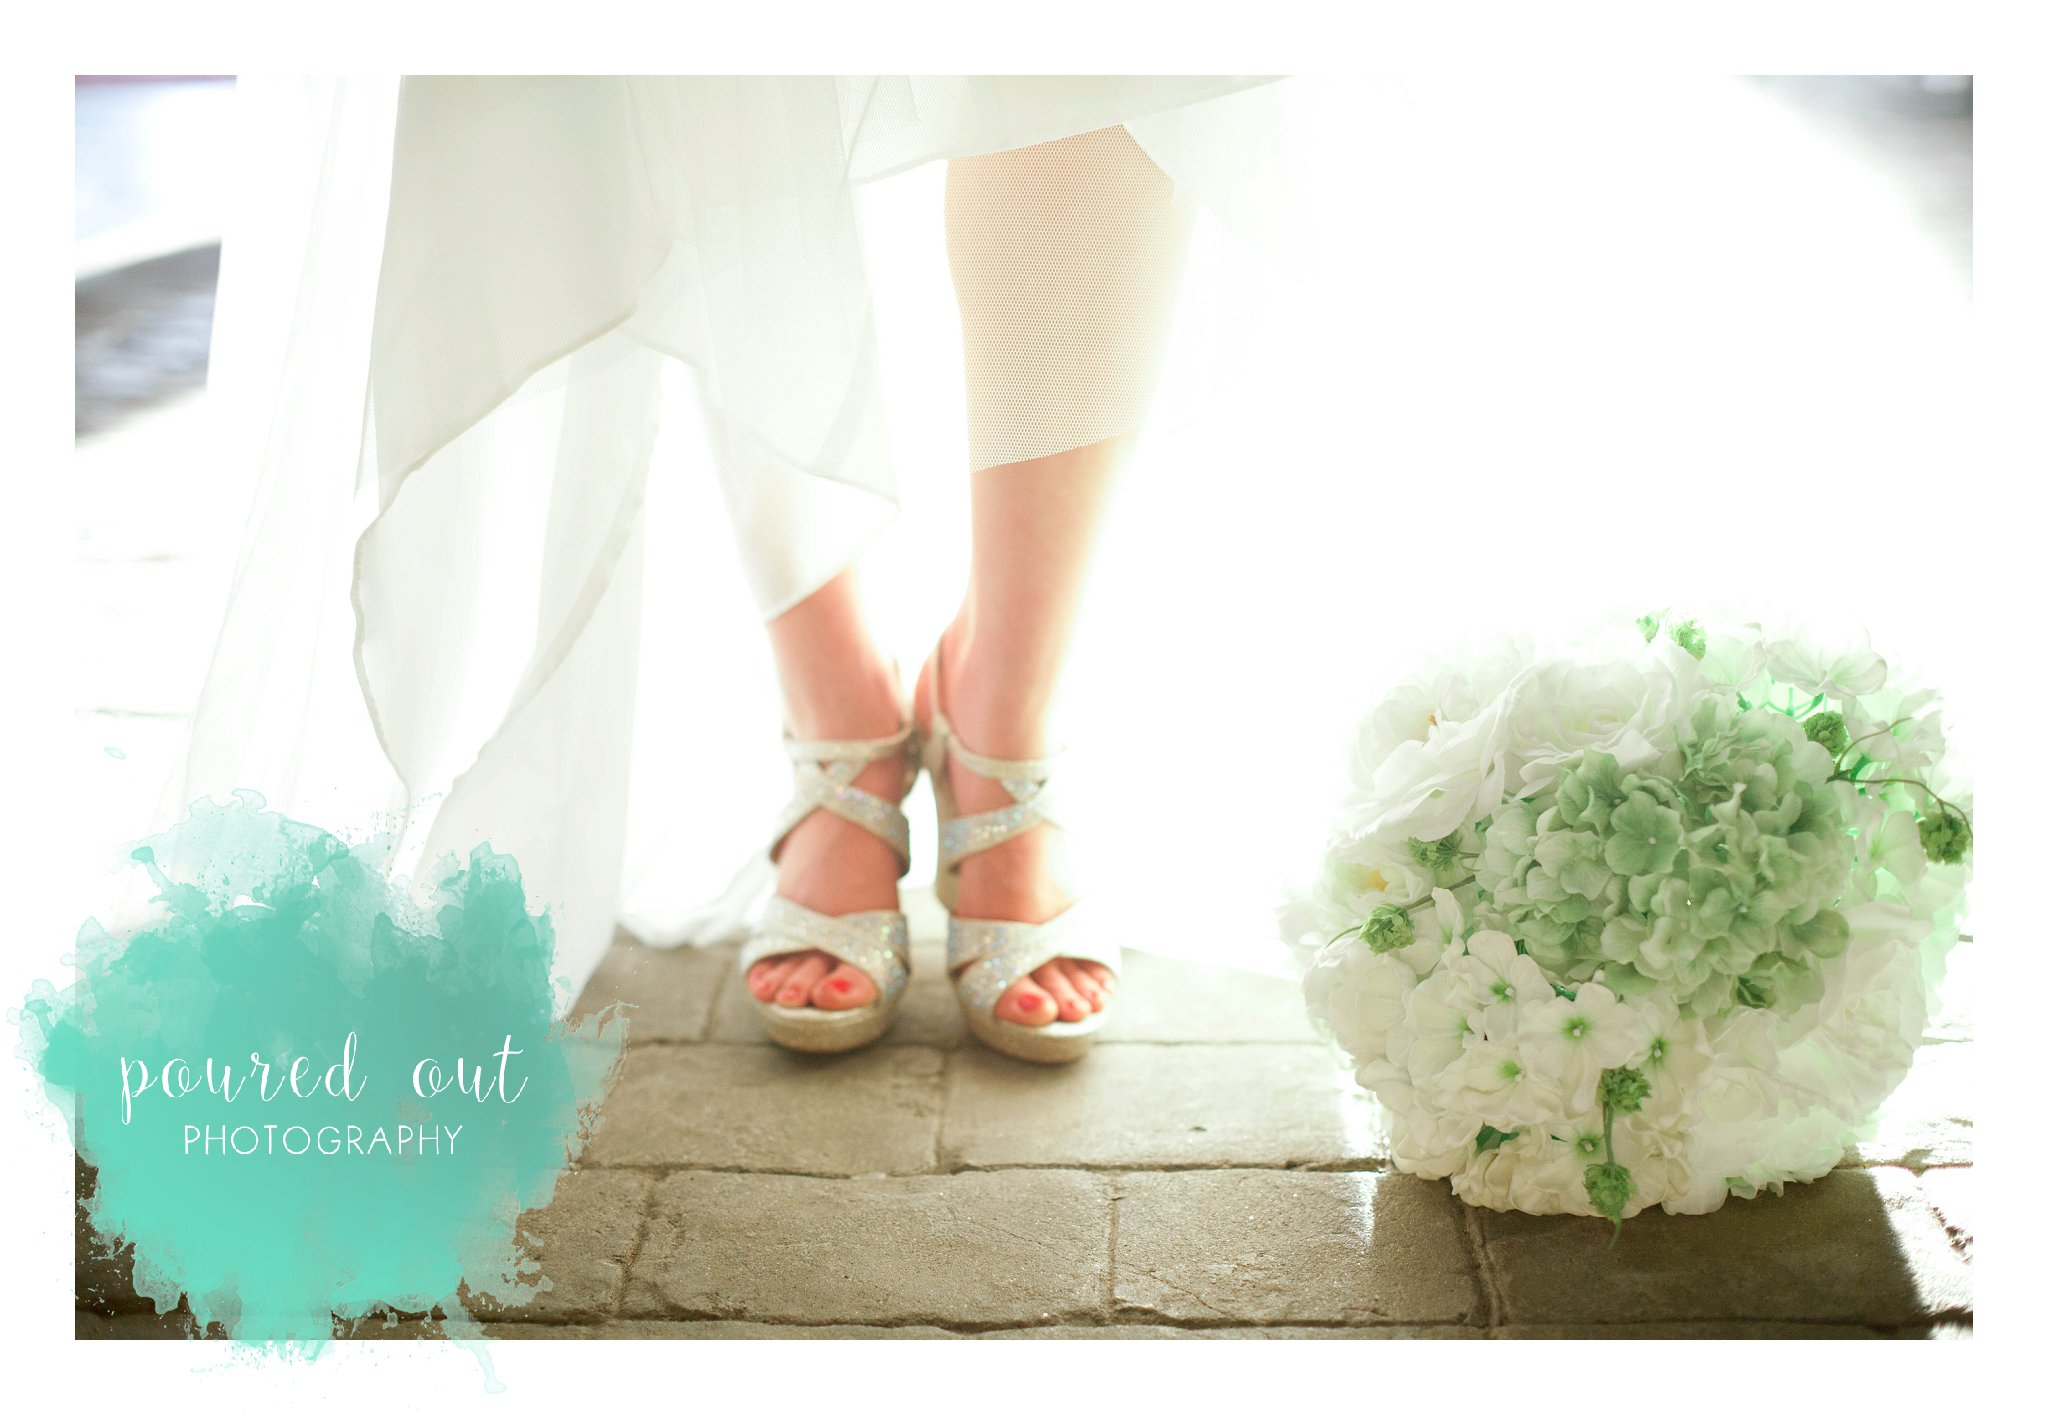 dani_bridal_poured_out_photography-184_WEB.jpg